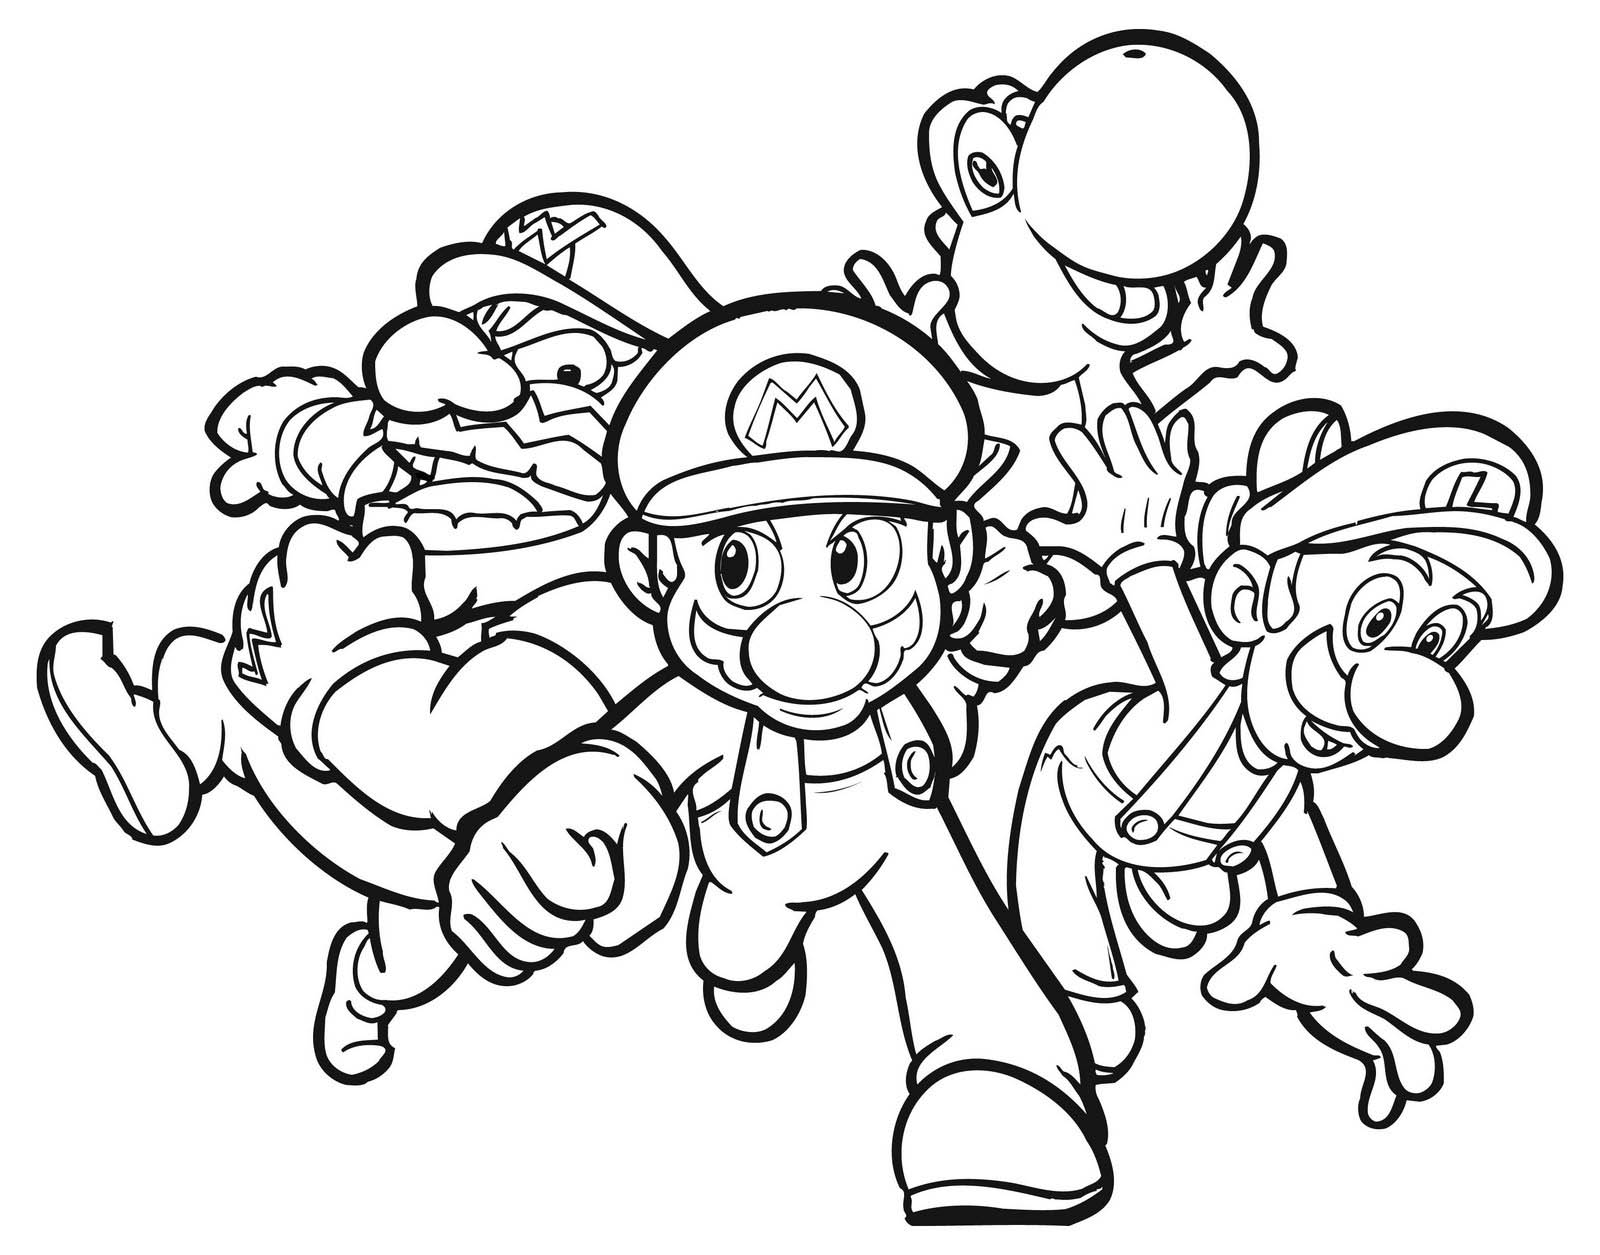 Super Mario Coloring Pages Free Printable